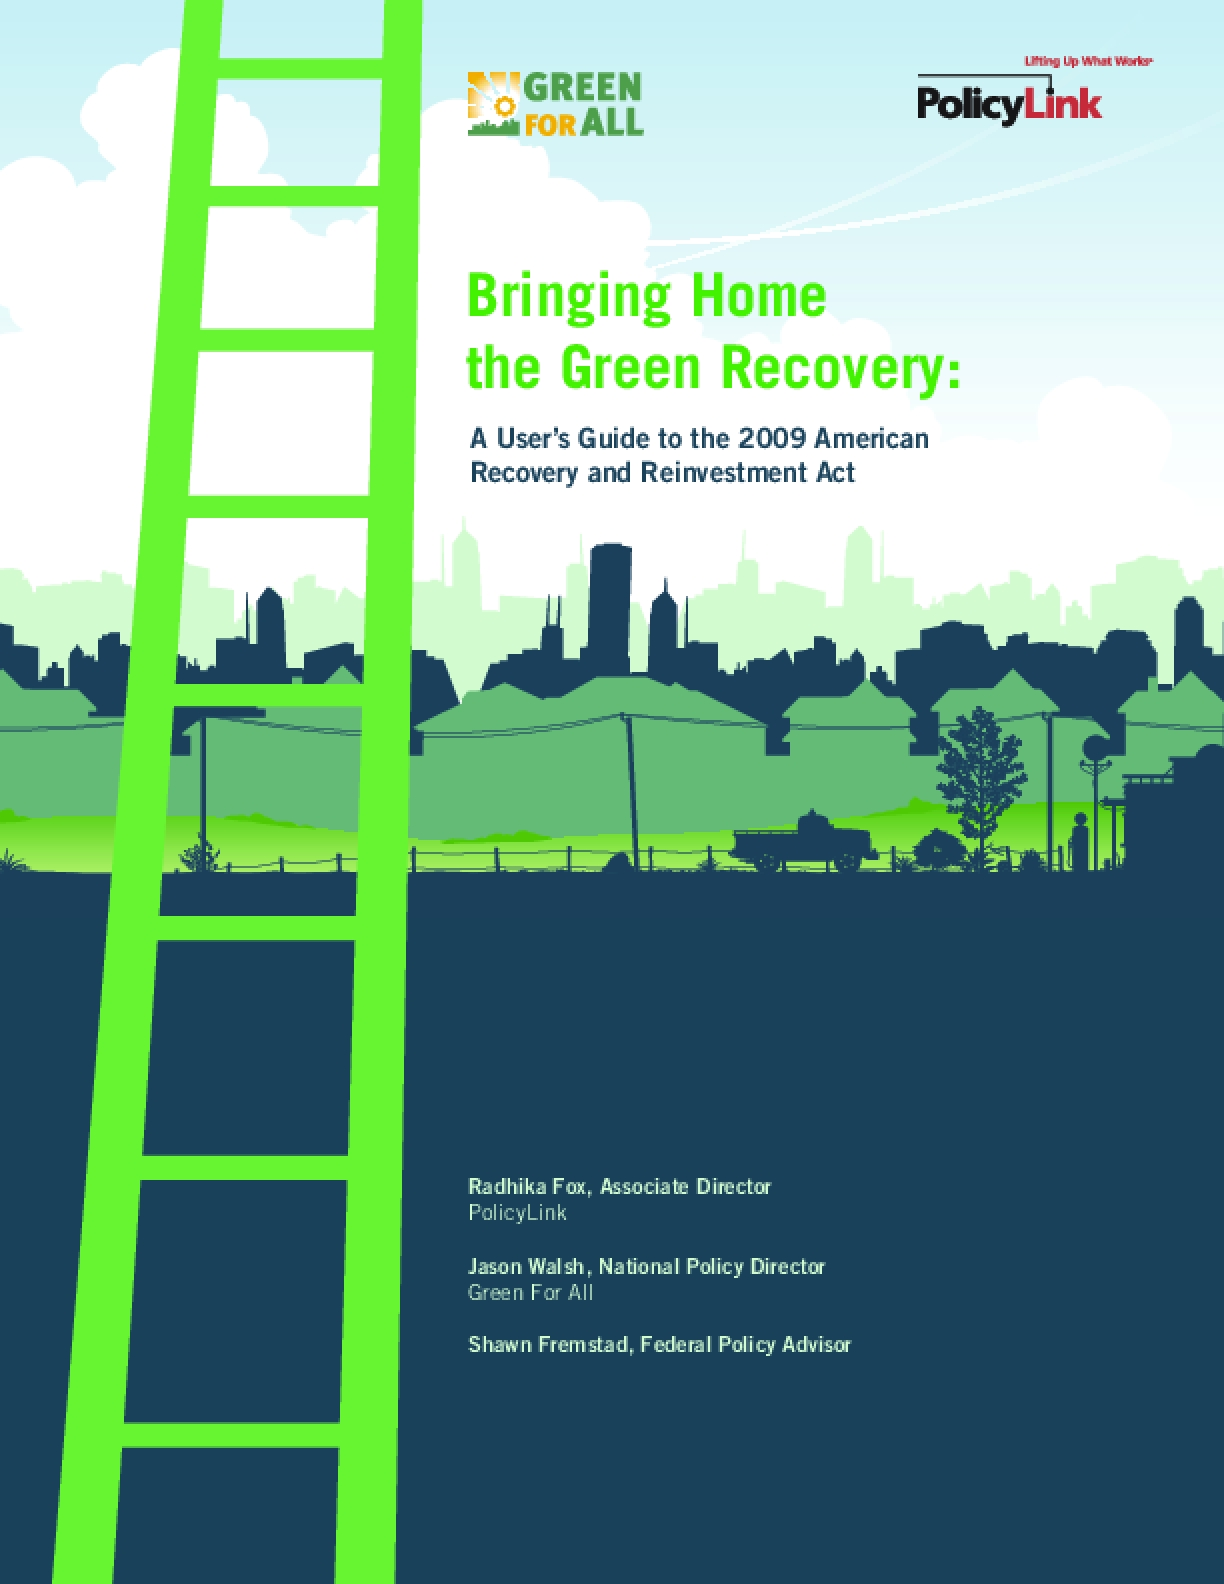 Bringing Home the Green Recovery: A User's Guide to the 2009 American Recovery and Reinvestment Act